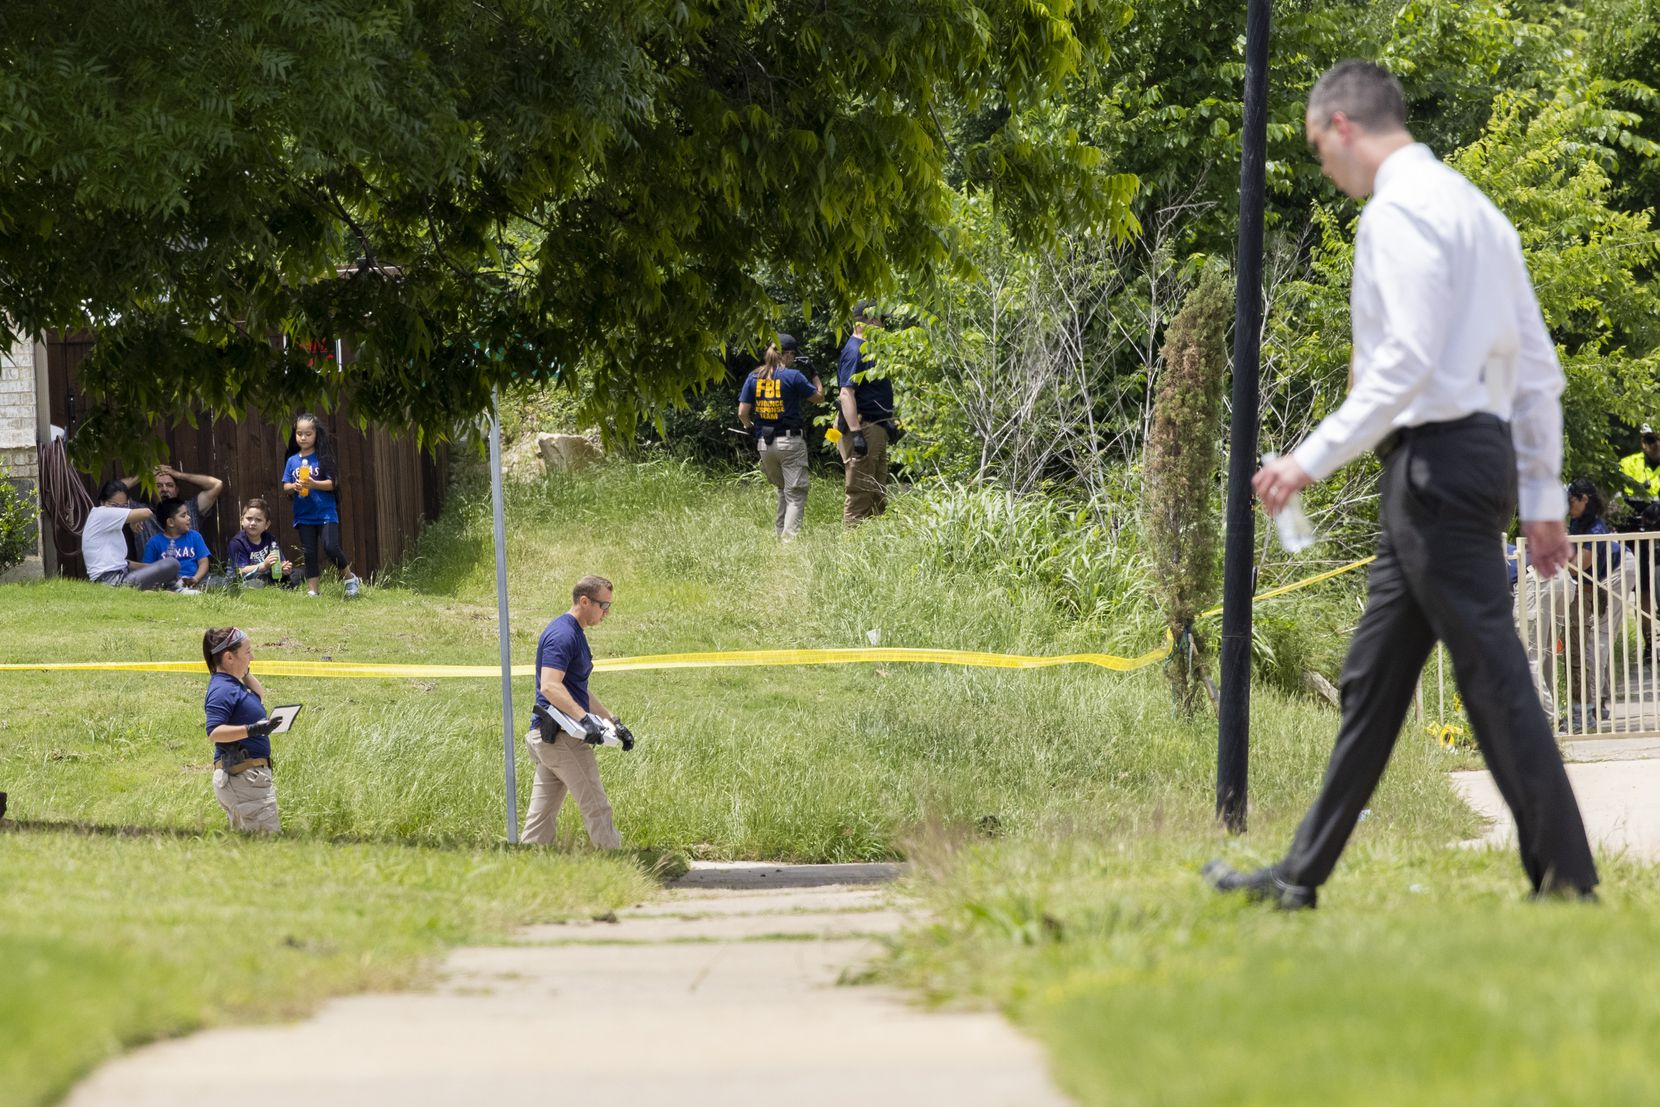 Authorities combed over the area near where the boy's body was found.